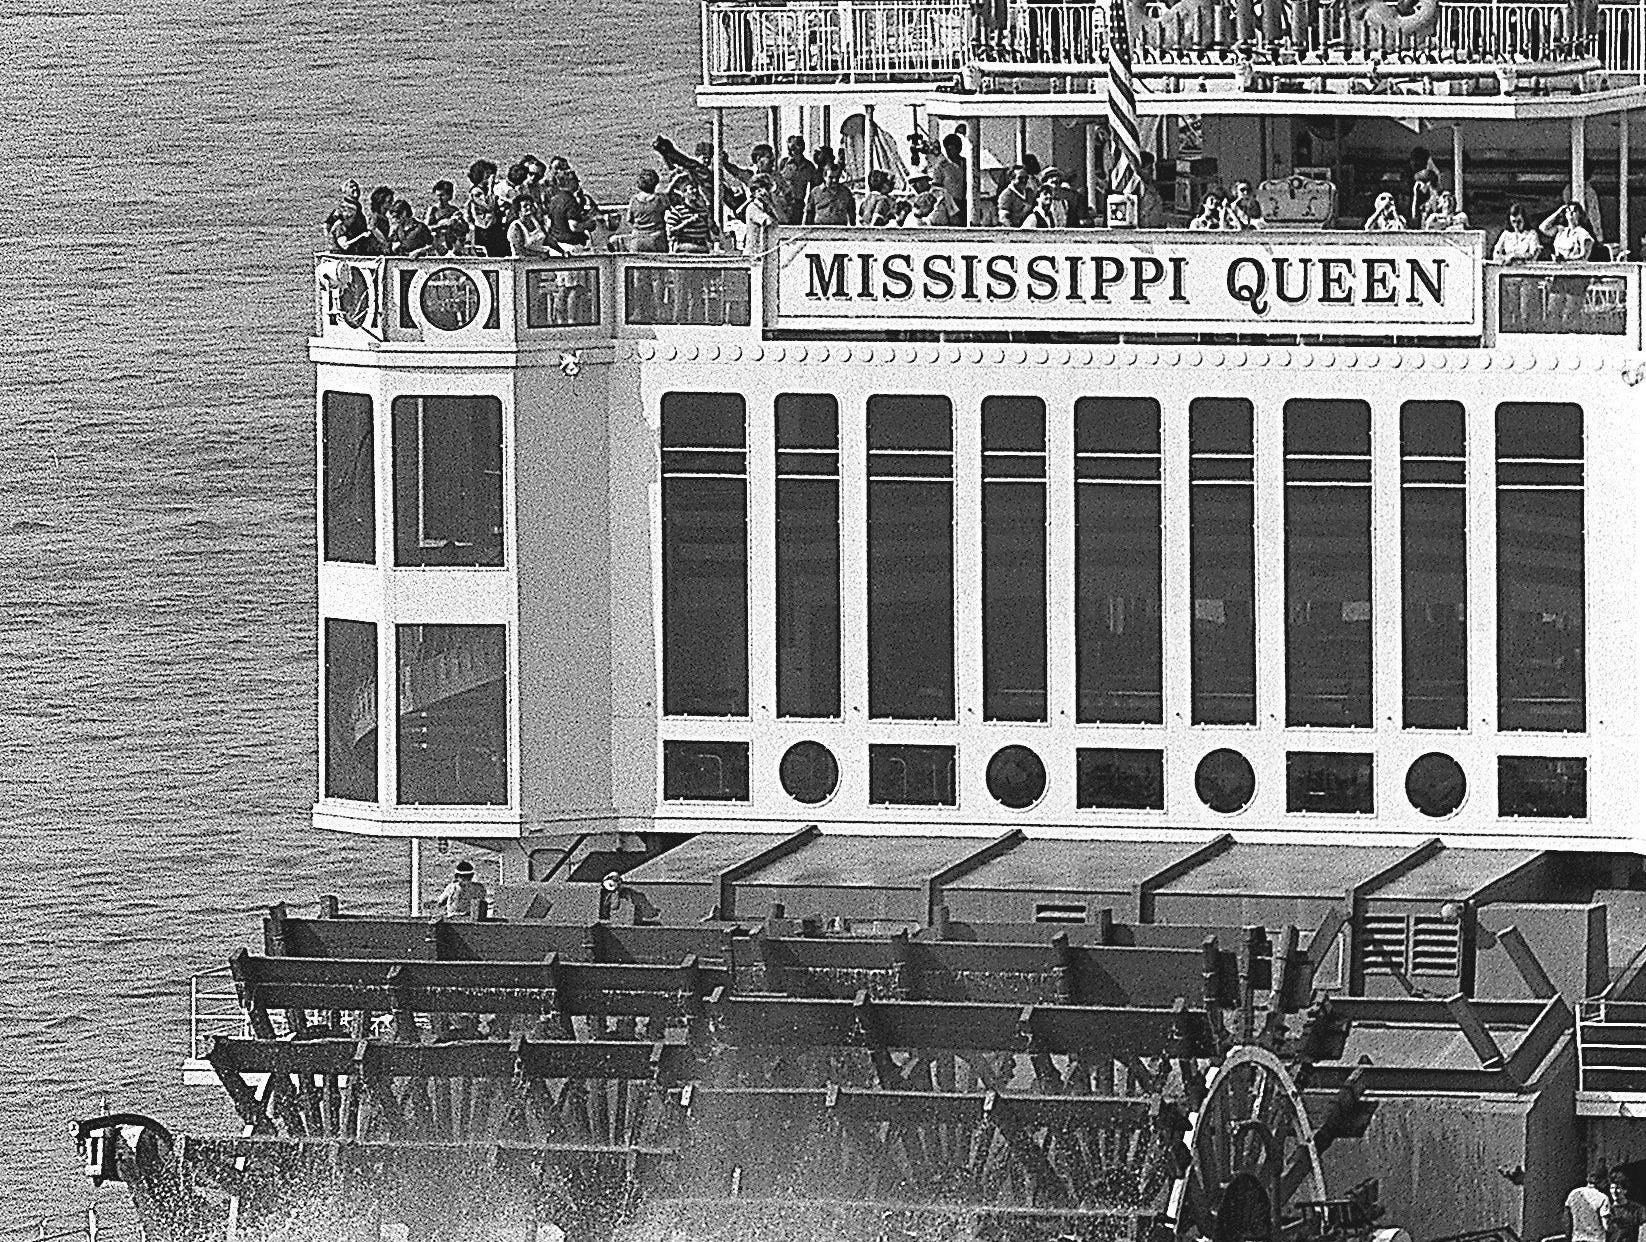 The Mississippi Queen races off toward St. Louis on 30 June 1984 after making one of its frequent visits to the Bluff City. It and the Delta Queen are taking part in the sixth annual Great Steamboat Race from New Orleans to St. Louis. The Delta Queen won last year's race, which itself is a re-enactment of the historic first steamboat race in 1870 between the Natchez and the Robert E. Lee, which won that first race. The two Queens are scheduled to arrive in St. Louis on July 4.